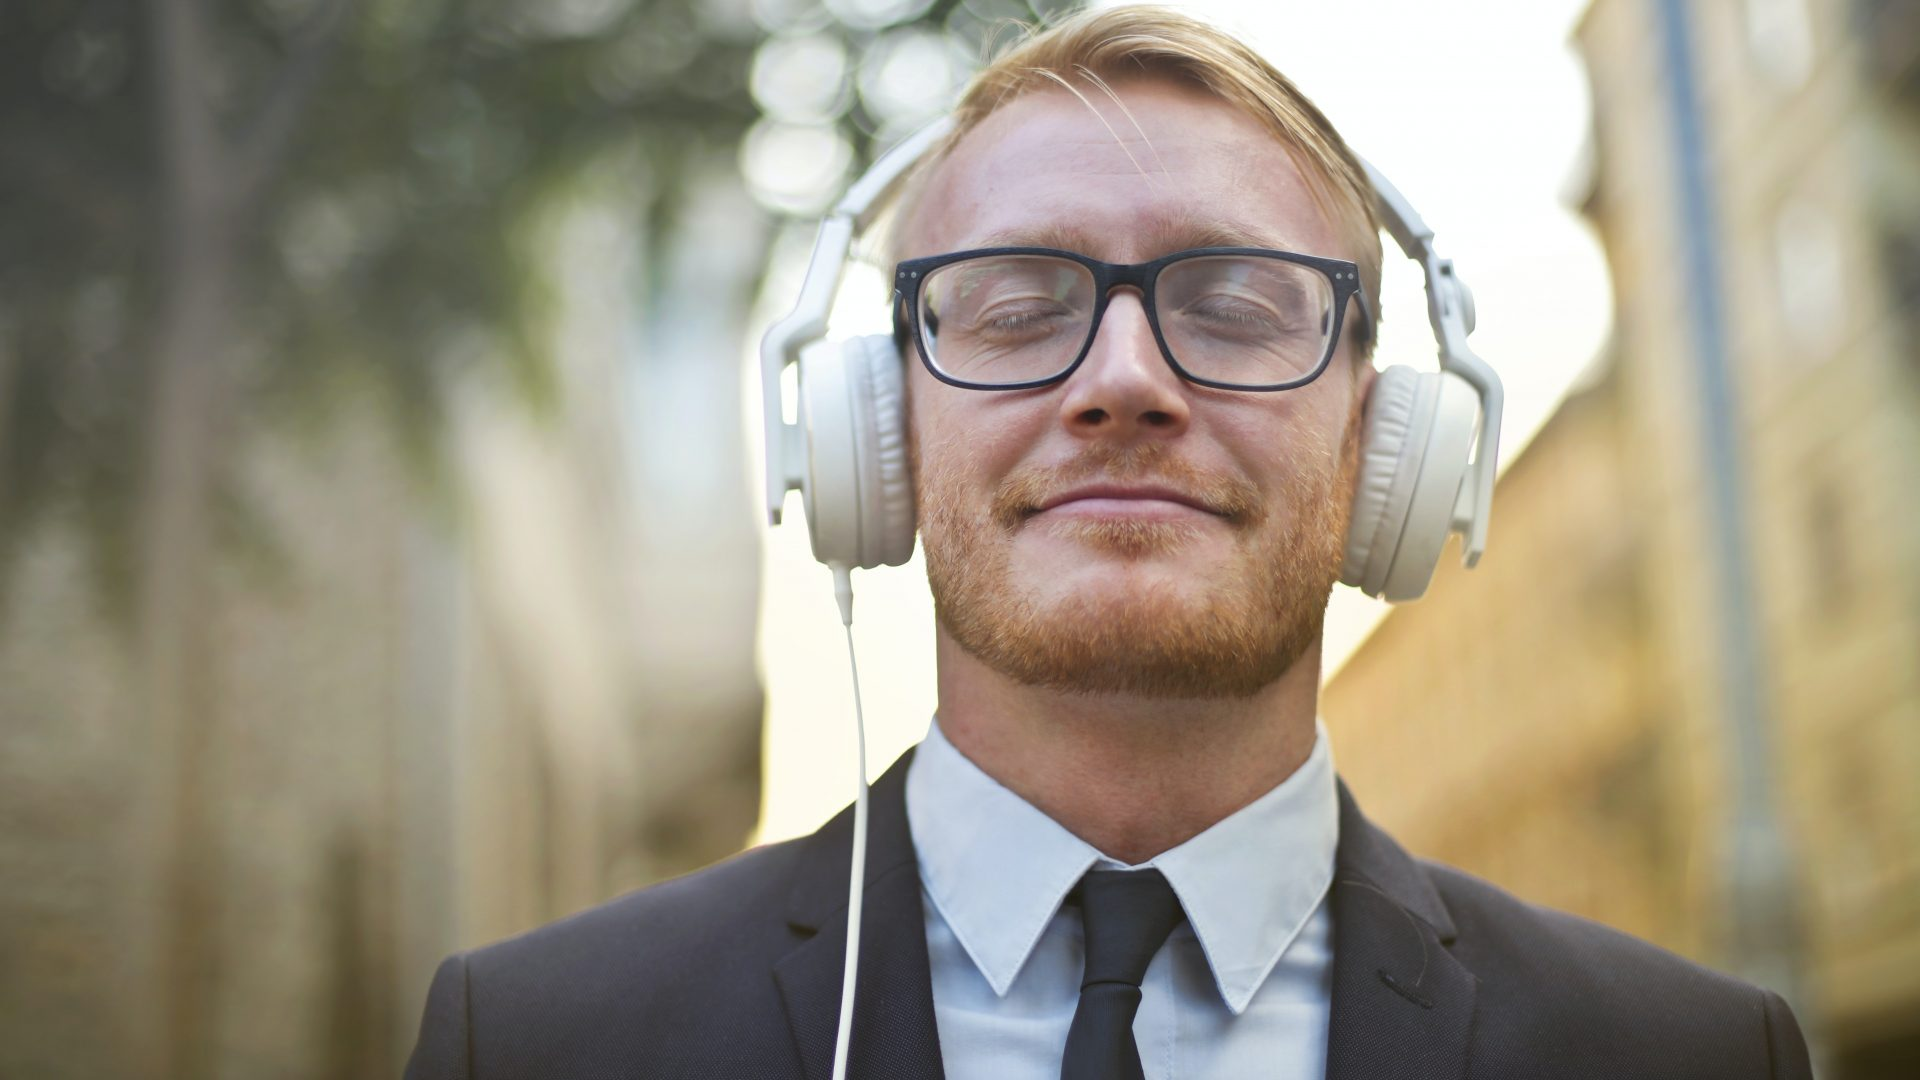 White man in suit and glasses listens to headphones outside